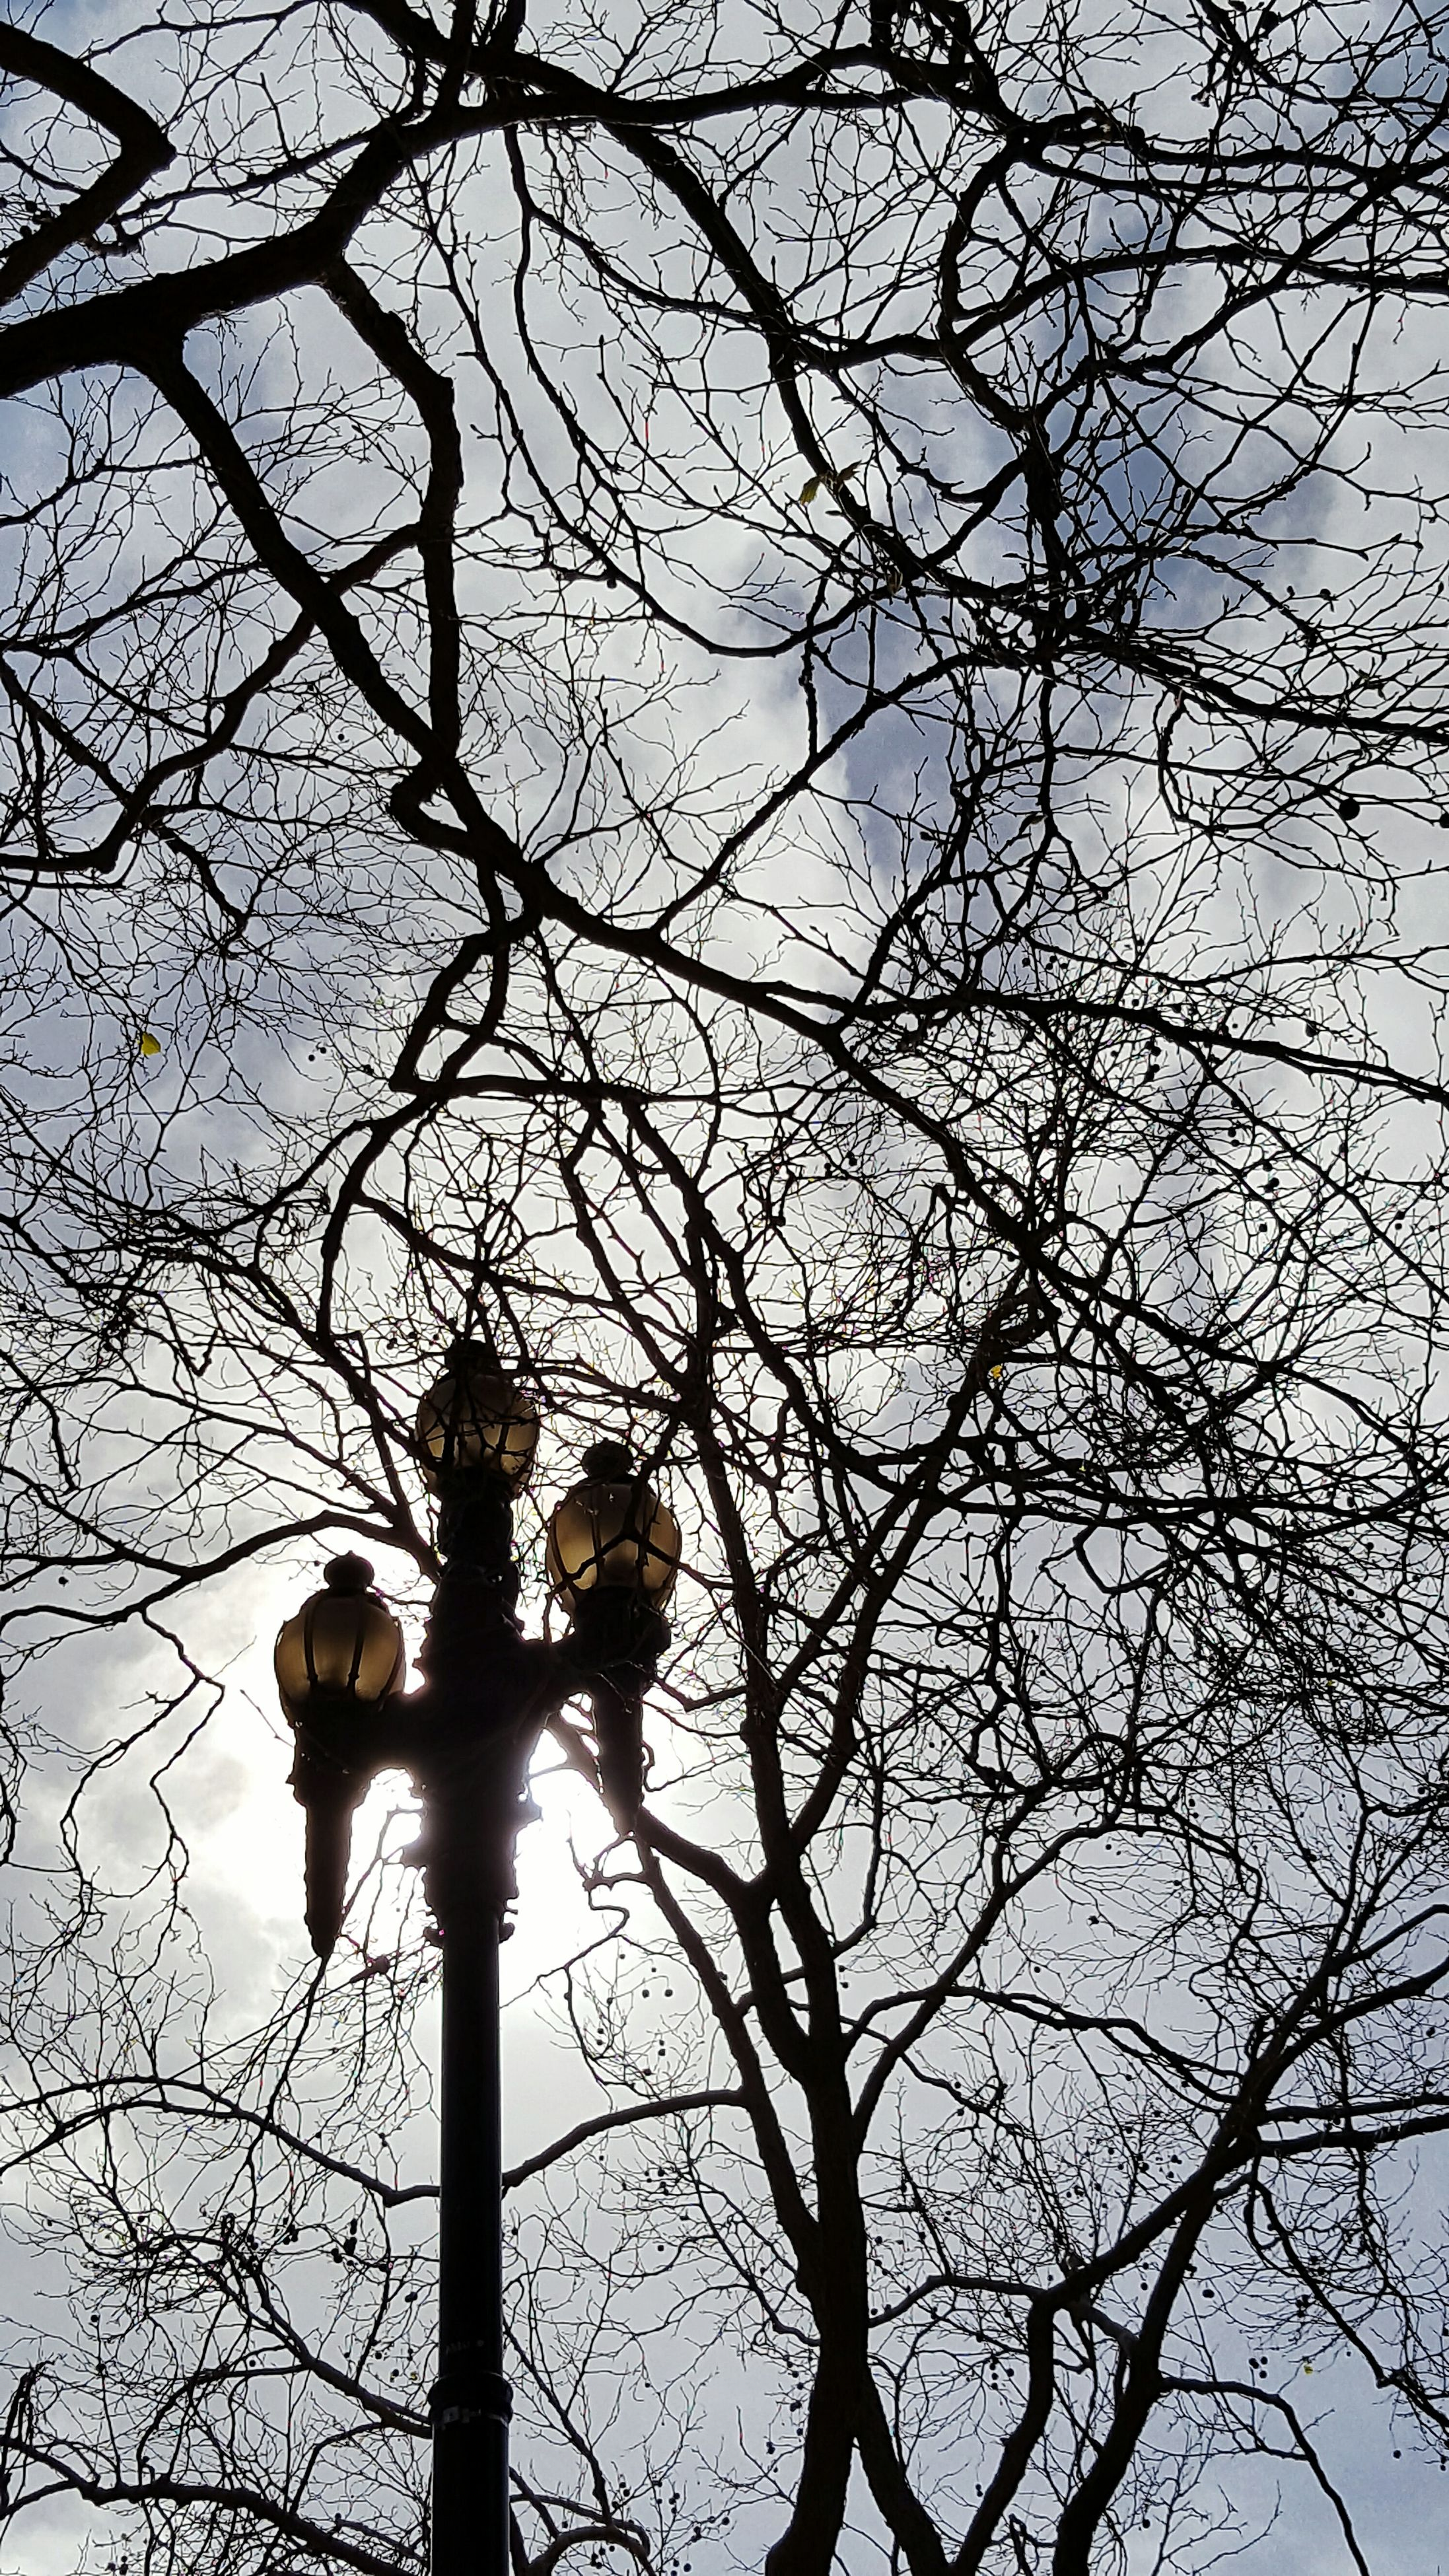 tree, bare tree, branch, low angle view, animal themes, nature, animals in the wild, togetherness, sky, no people, outdoors, day, animal wildlife, perching, beauty in nature, mammal, bird